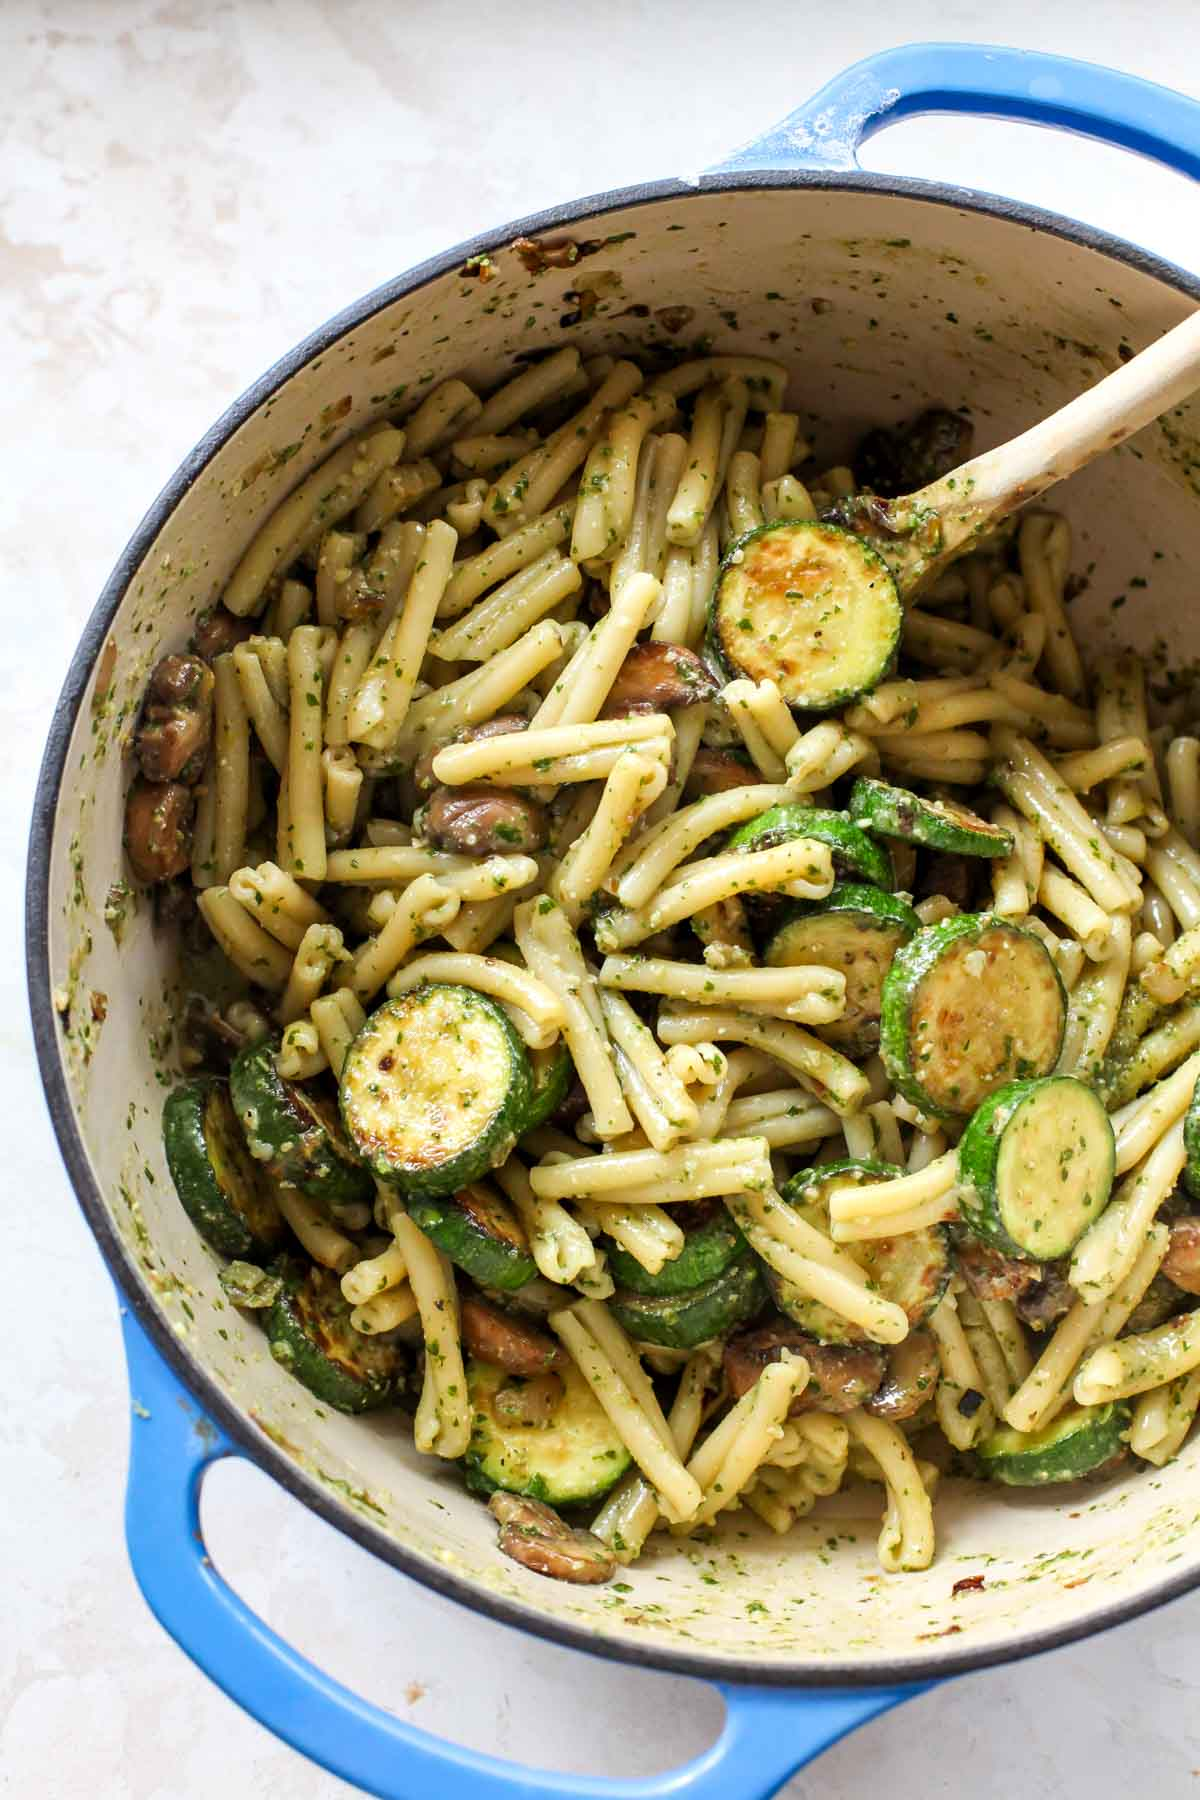 Pasta mixed with pesto and zucchini in a large blue pot with a wooden spoon